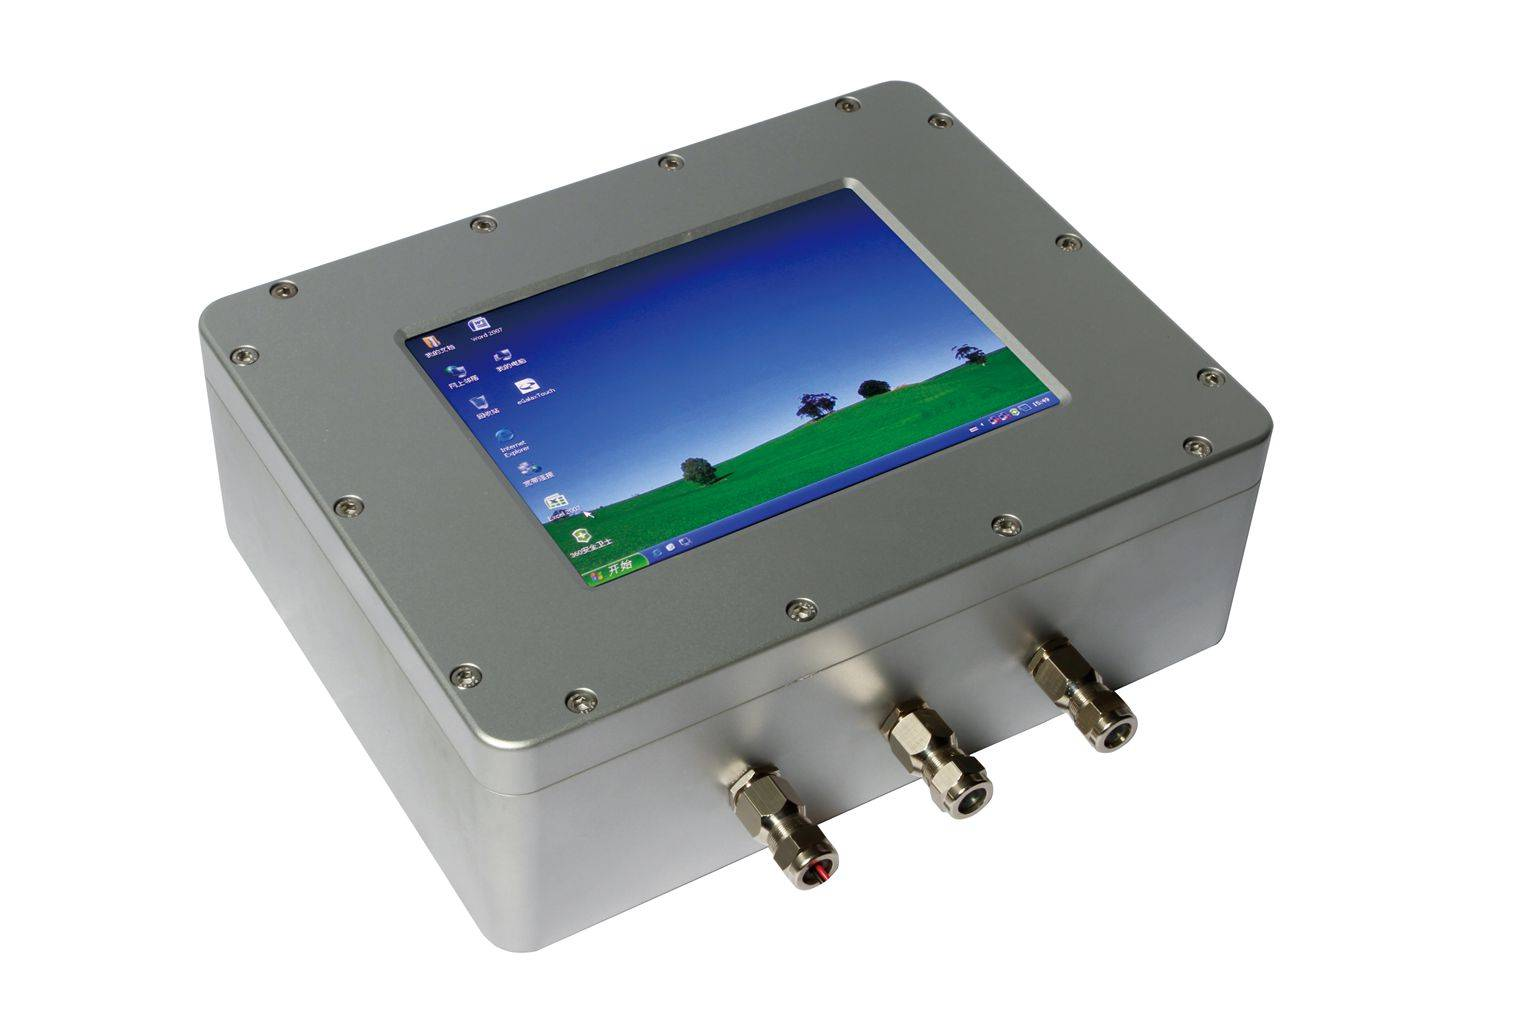 explosion proof moniter, explosion protect terminal display, anti-explosion monitor